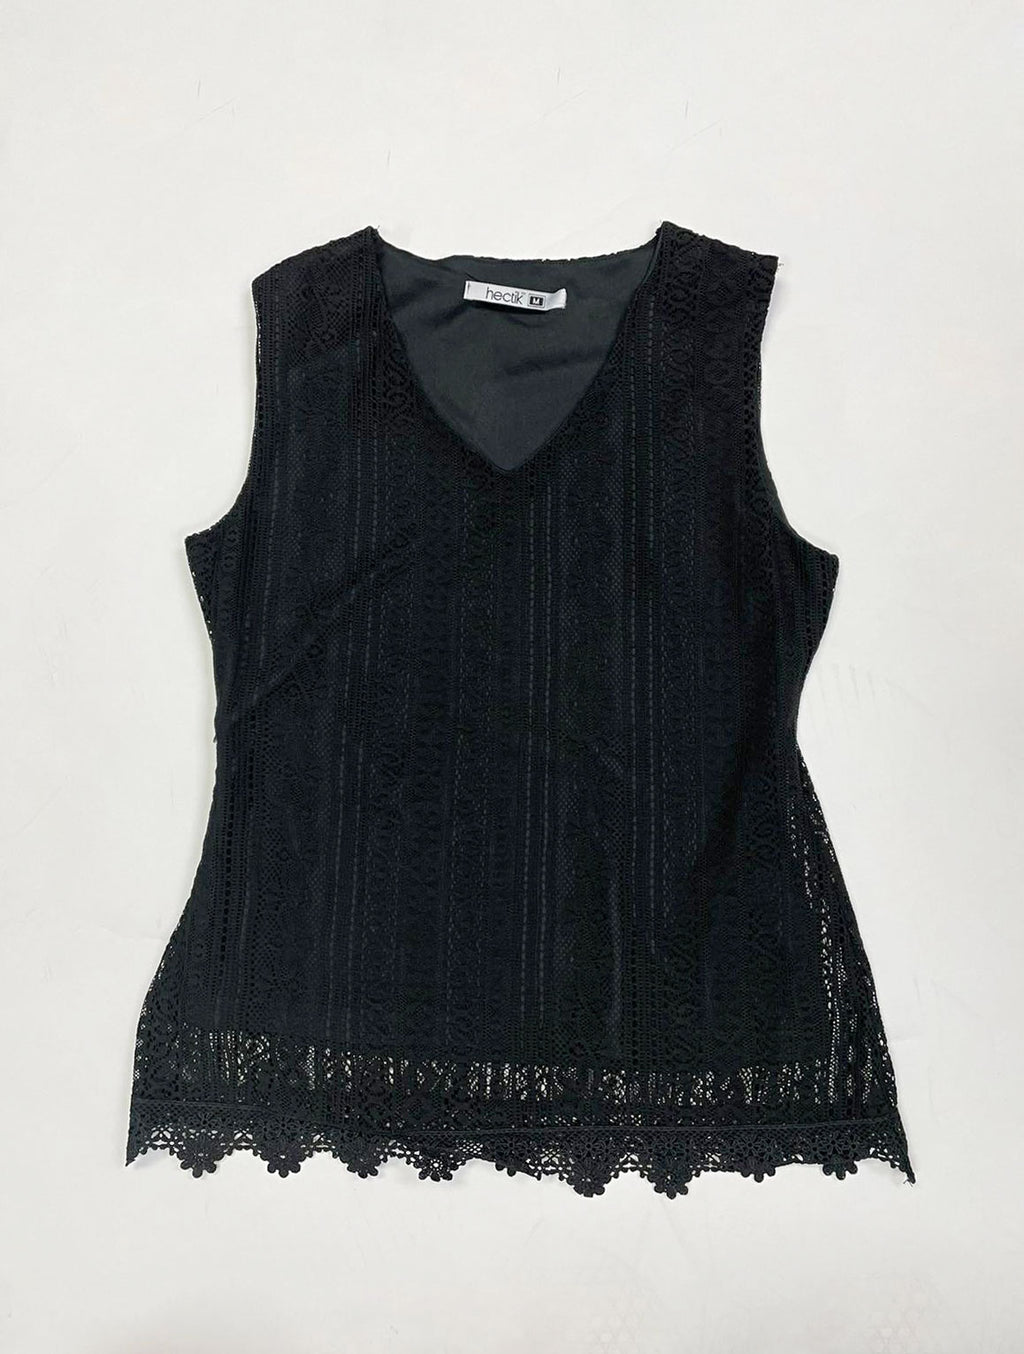 Black Sleeveless Lace Top | IQ-227